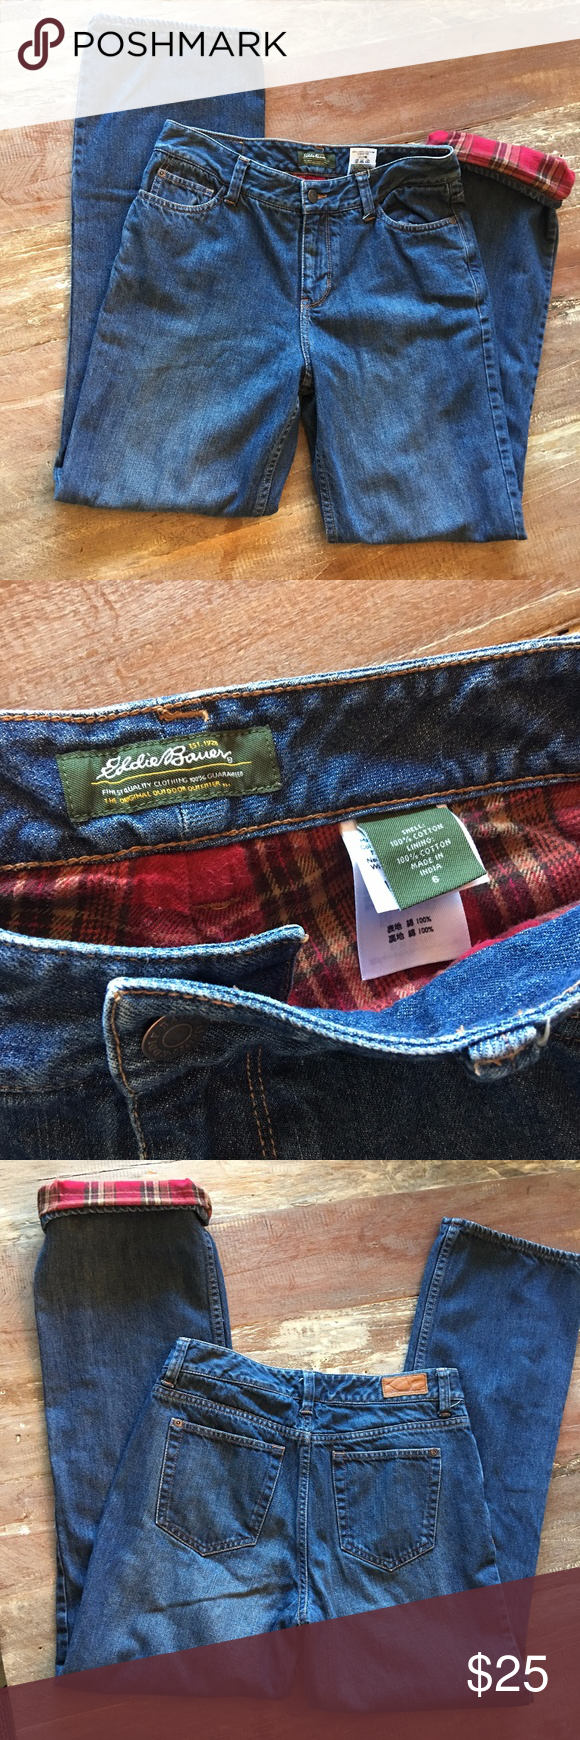 Eddie Bauer flannel lined jeans Stay snug and warm this